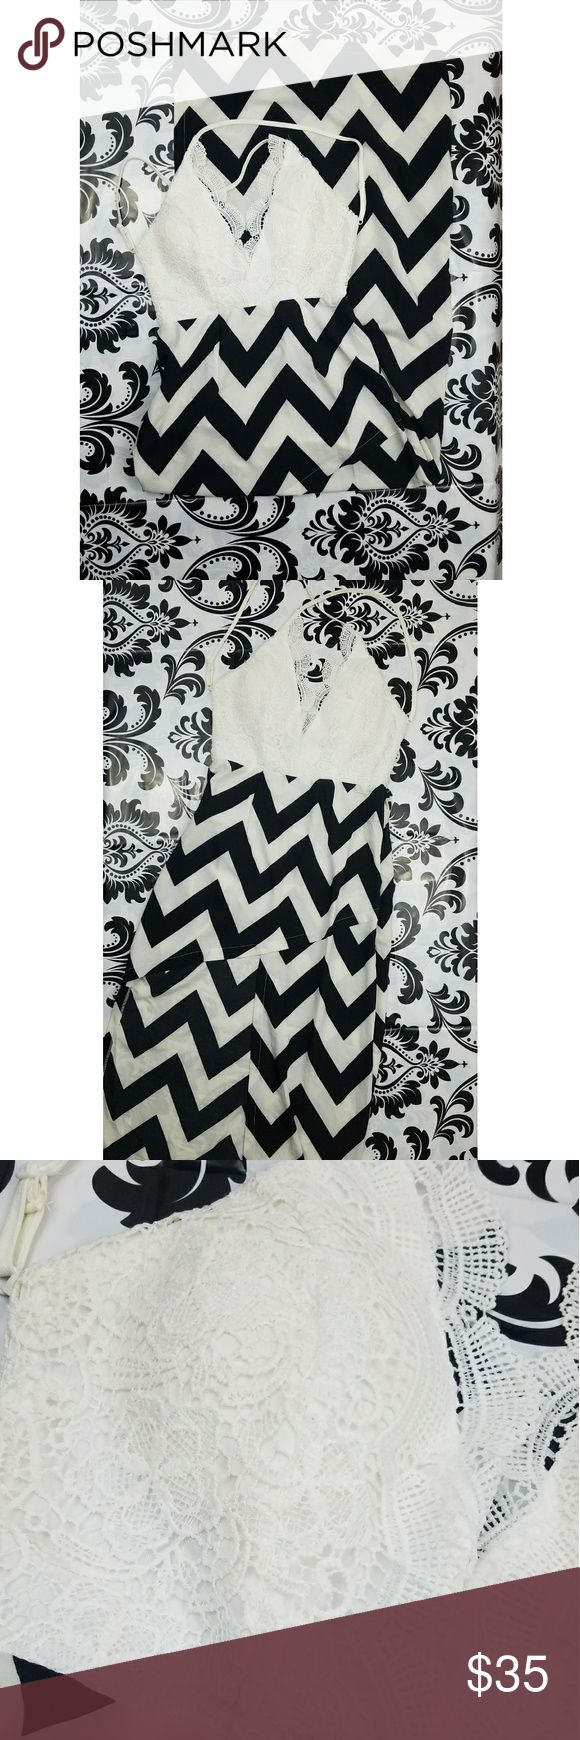 Maxi dress Womens fashion mia maxi dress A symmetrical cut on the front  Black and white striped  Lace top Women's Size medium  BRAND NEW WITH tags Dresses Maxi